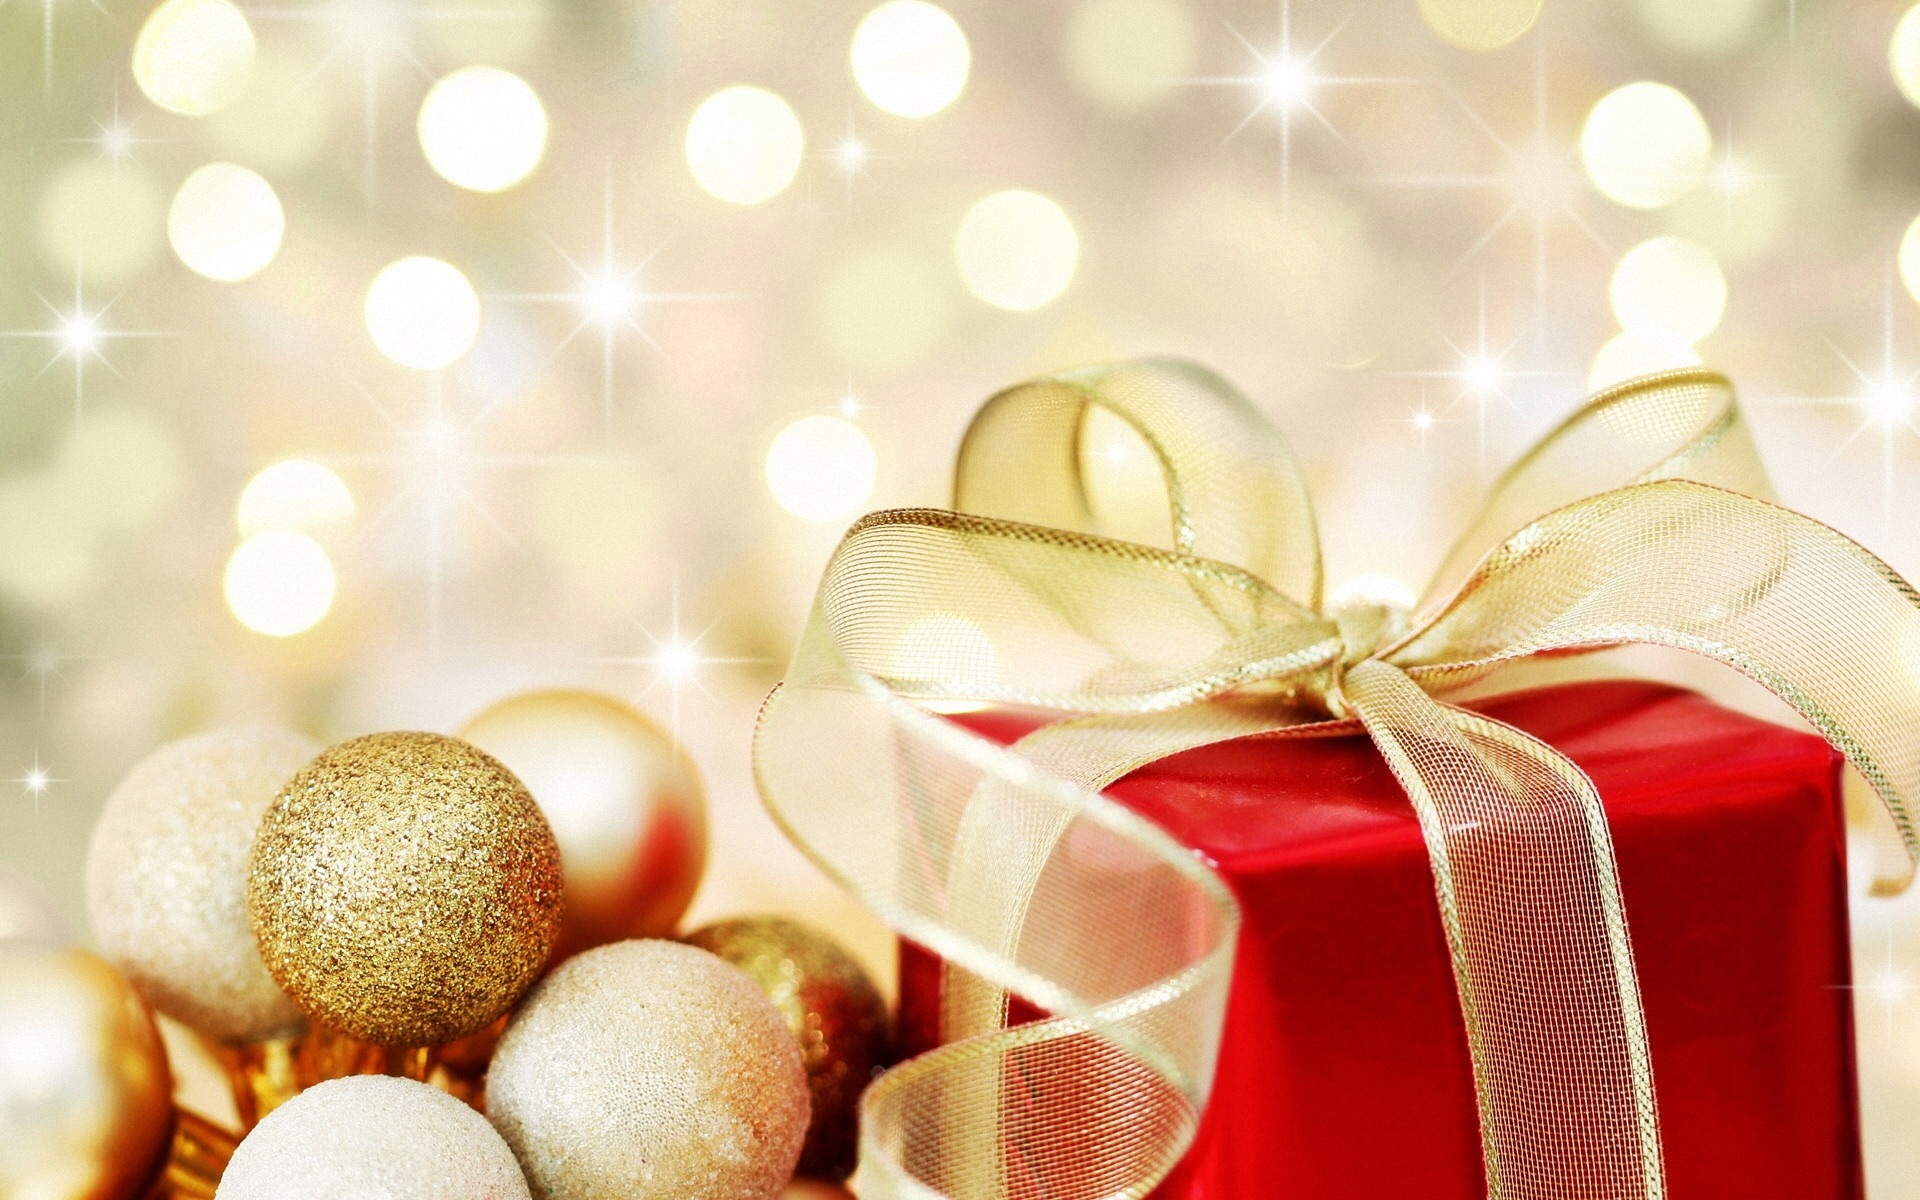 Christmas Spa Packages.Packages For The Best Christmas Day Spa Gift Ideas Saltair Spa